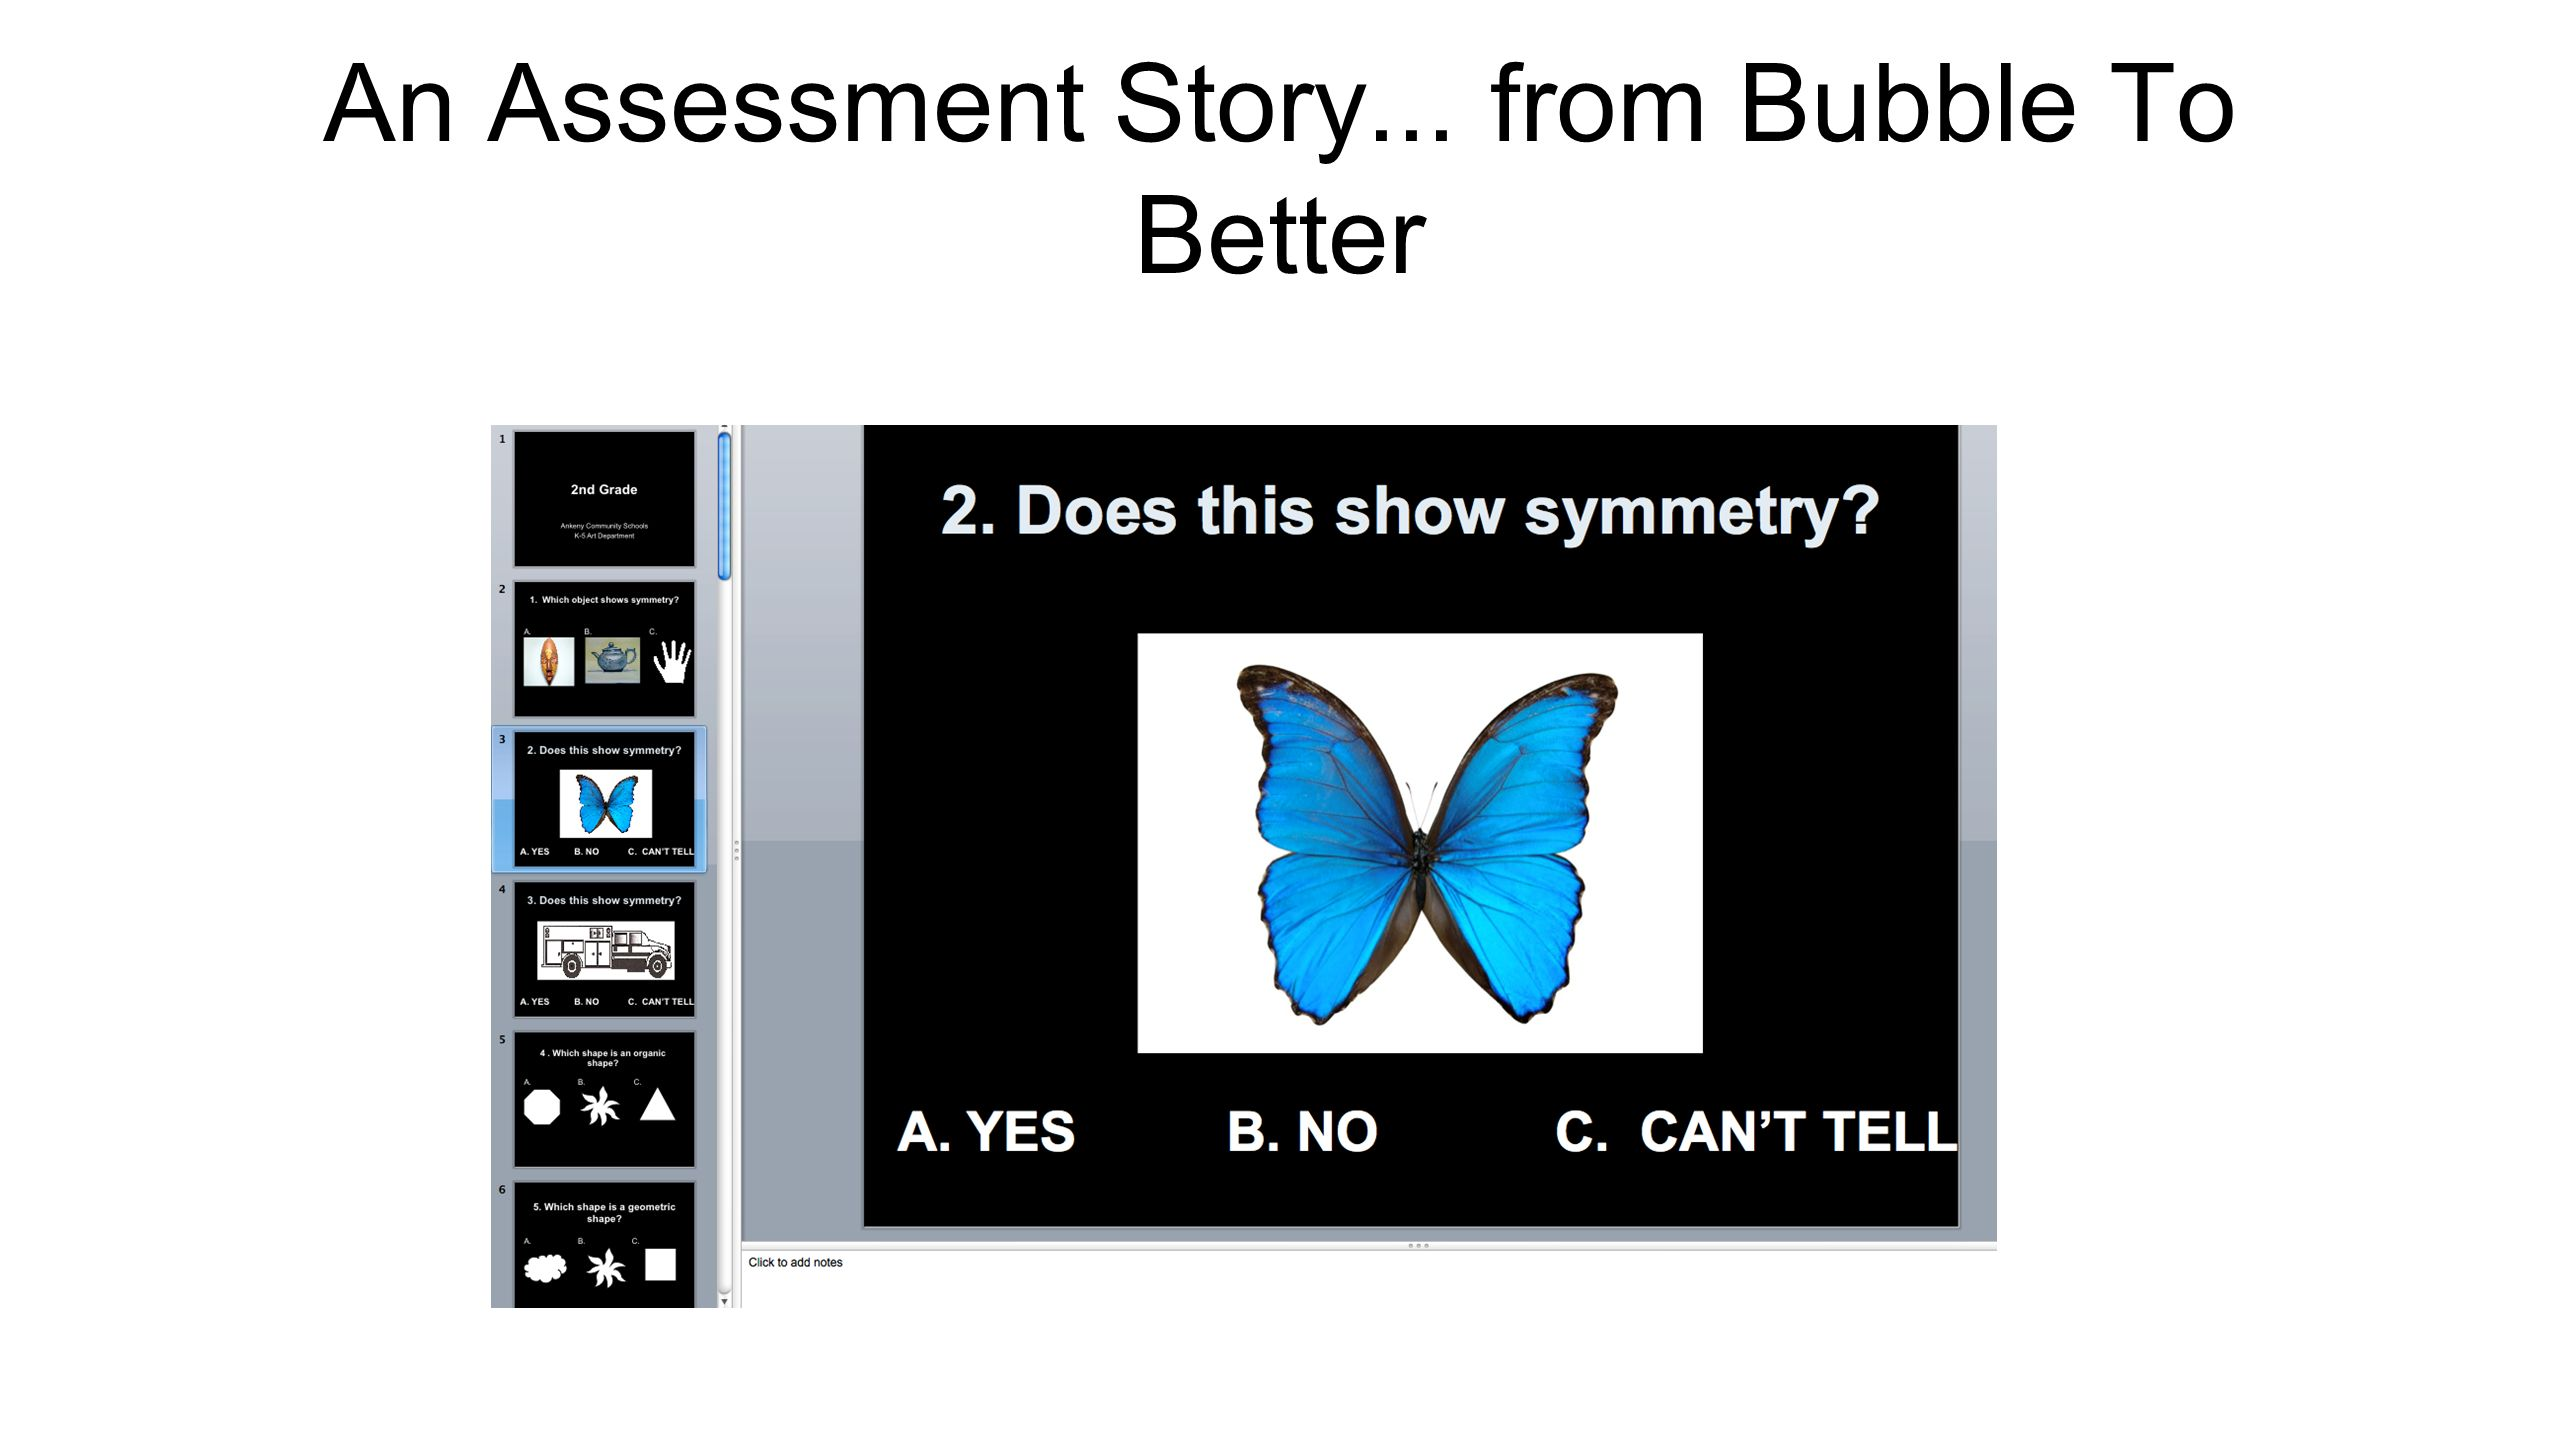 An Assessment Story... from Bubble To Better